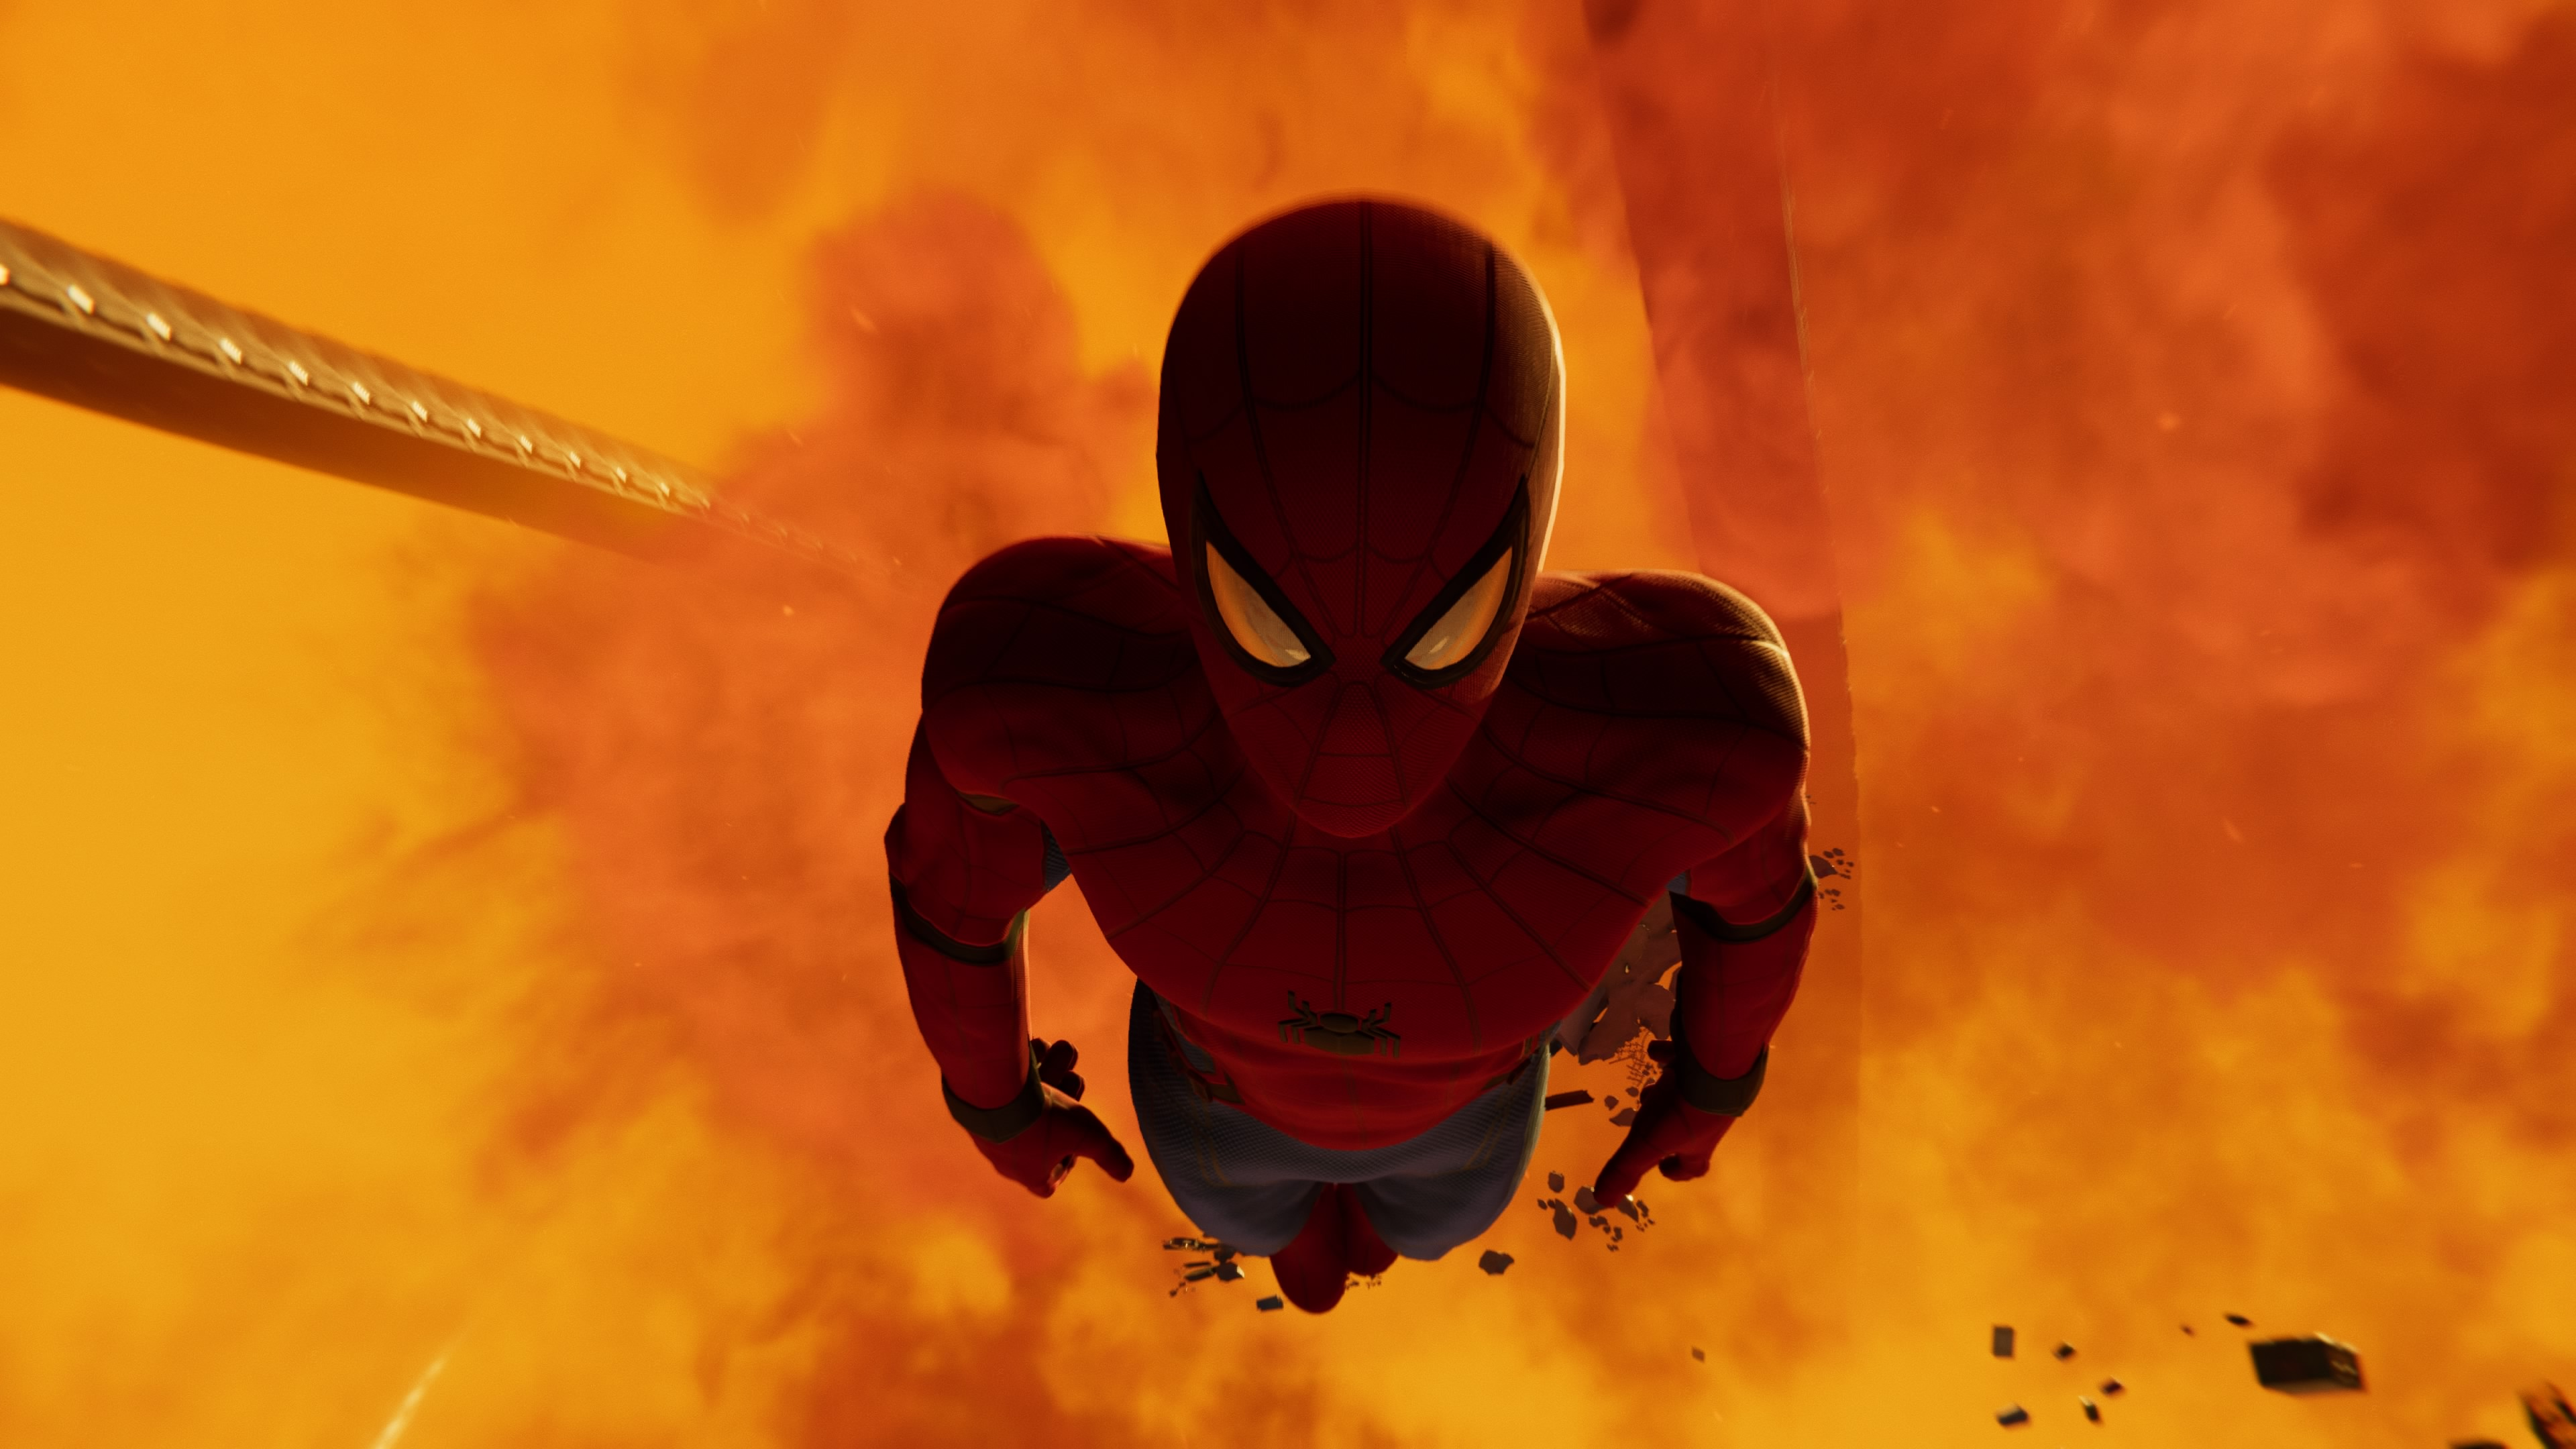 Spider-man falls into fire.jpg